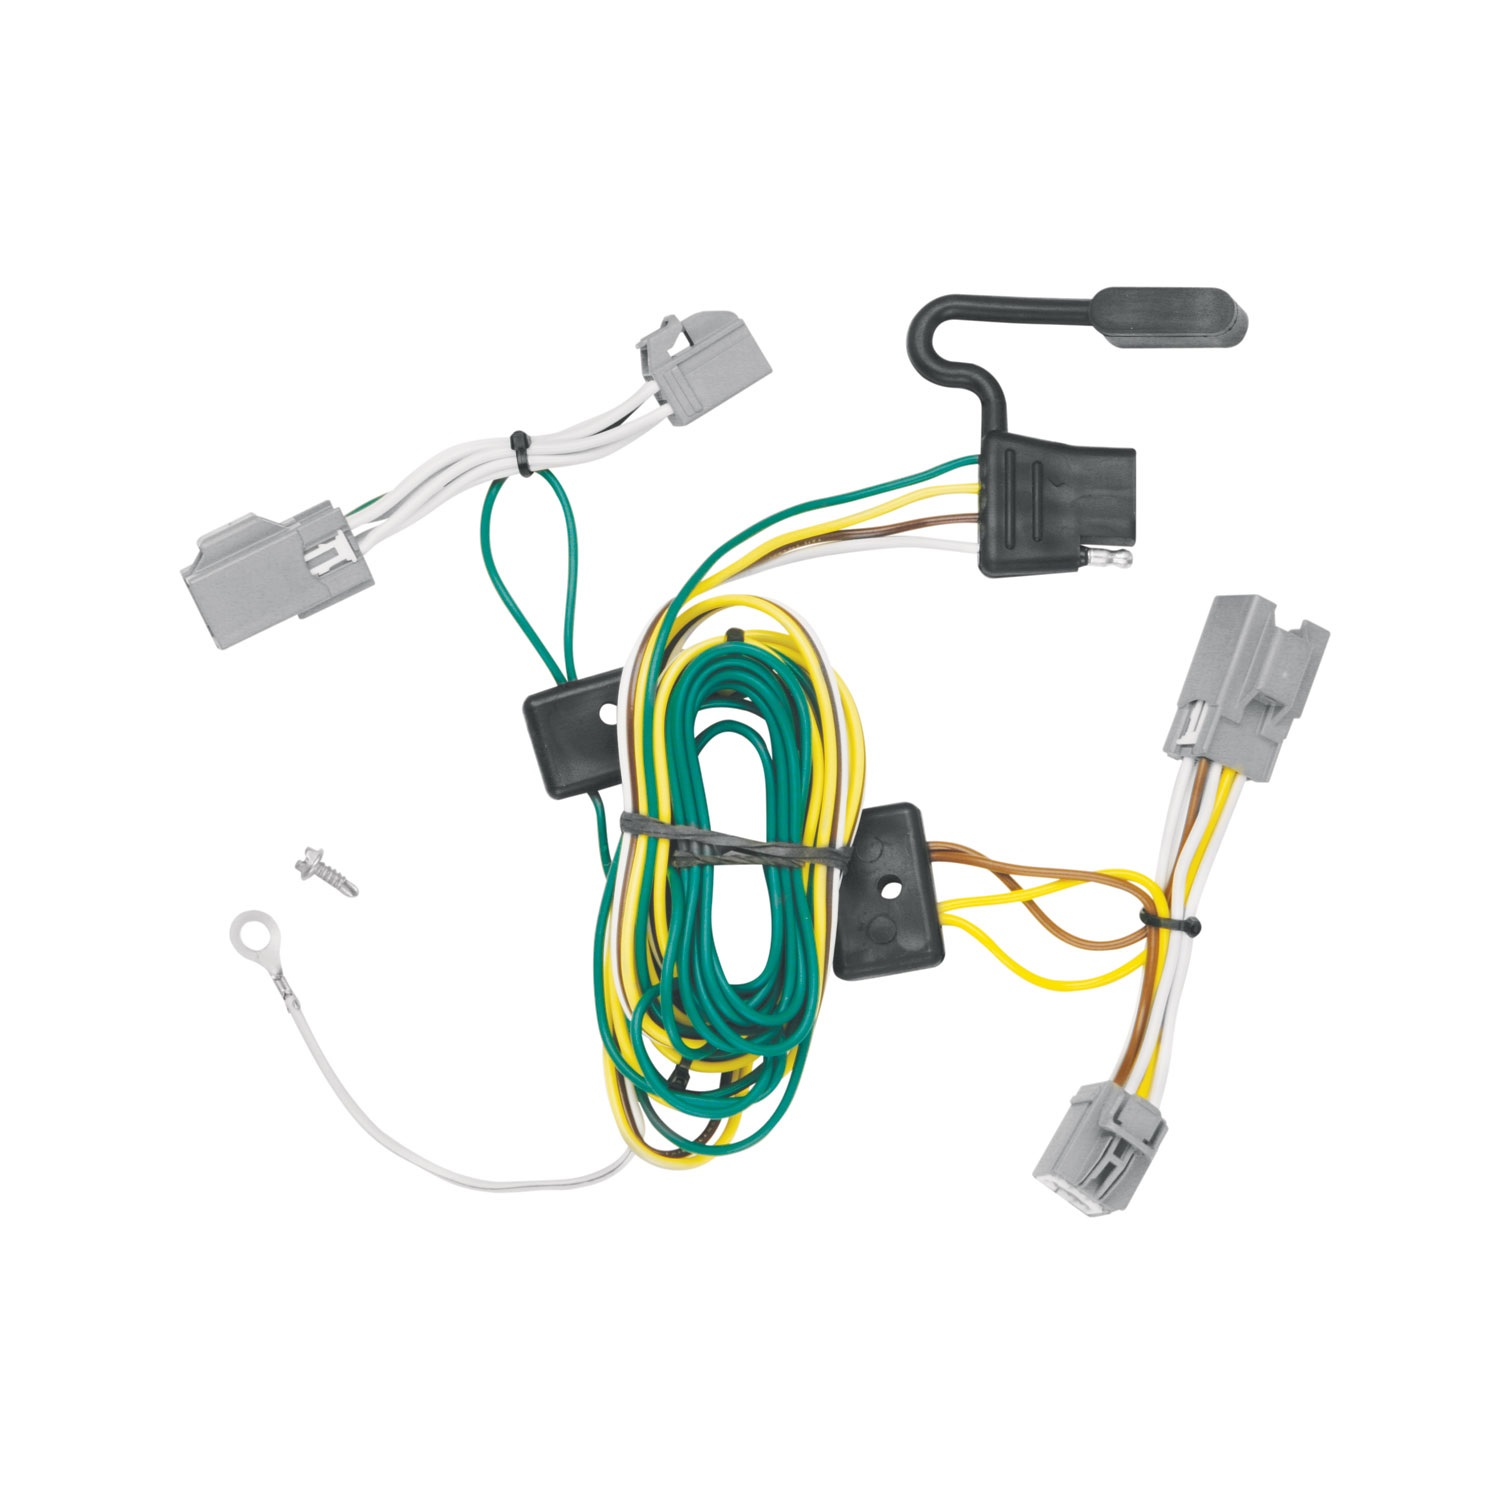 Tow Ready 118448 Wiring T-One Connector; 2 Wire System; Amp Rating 7.5;